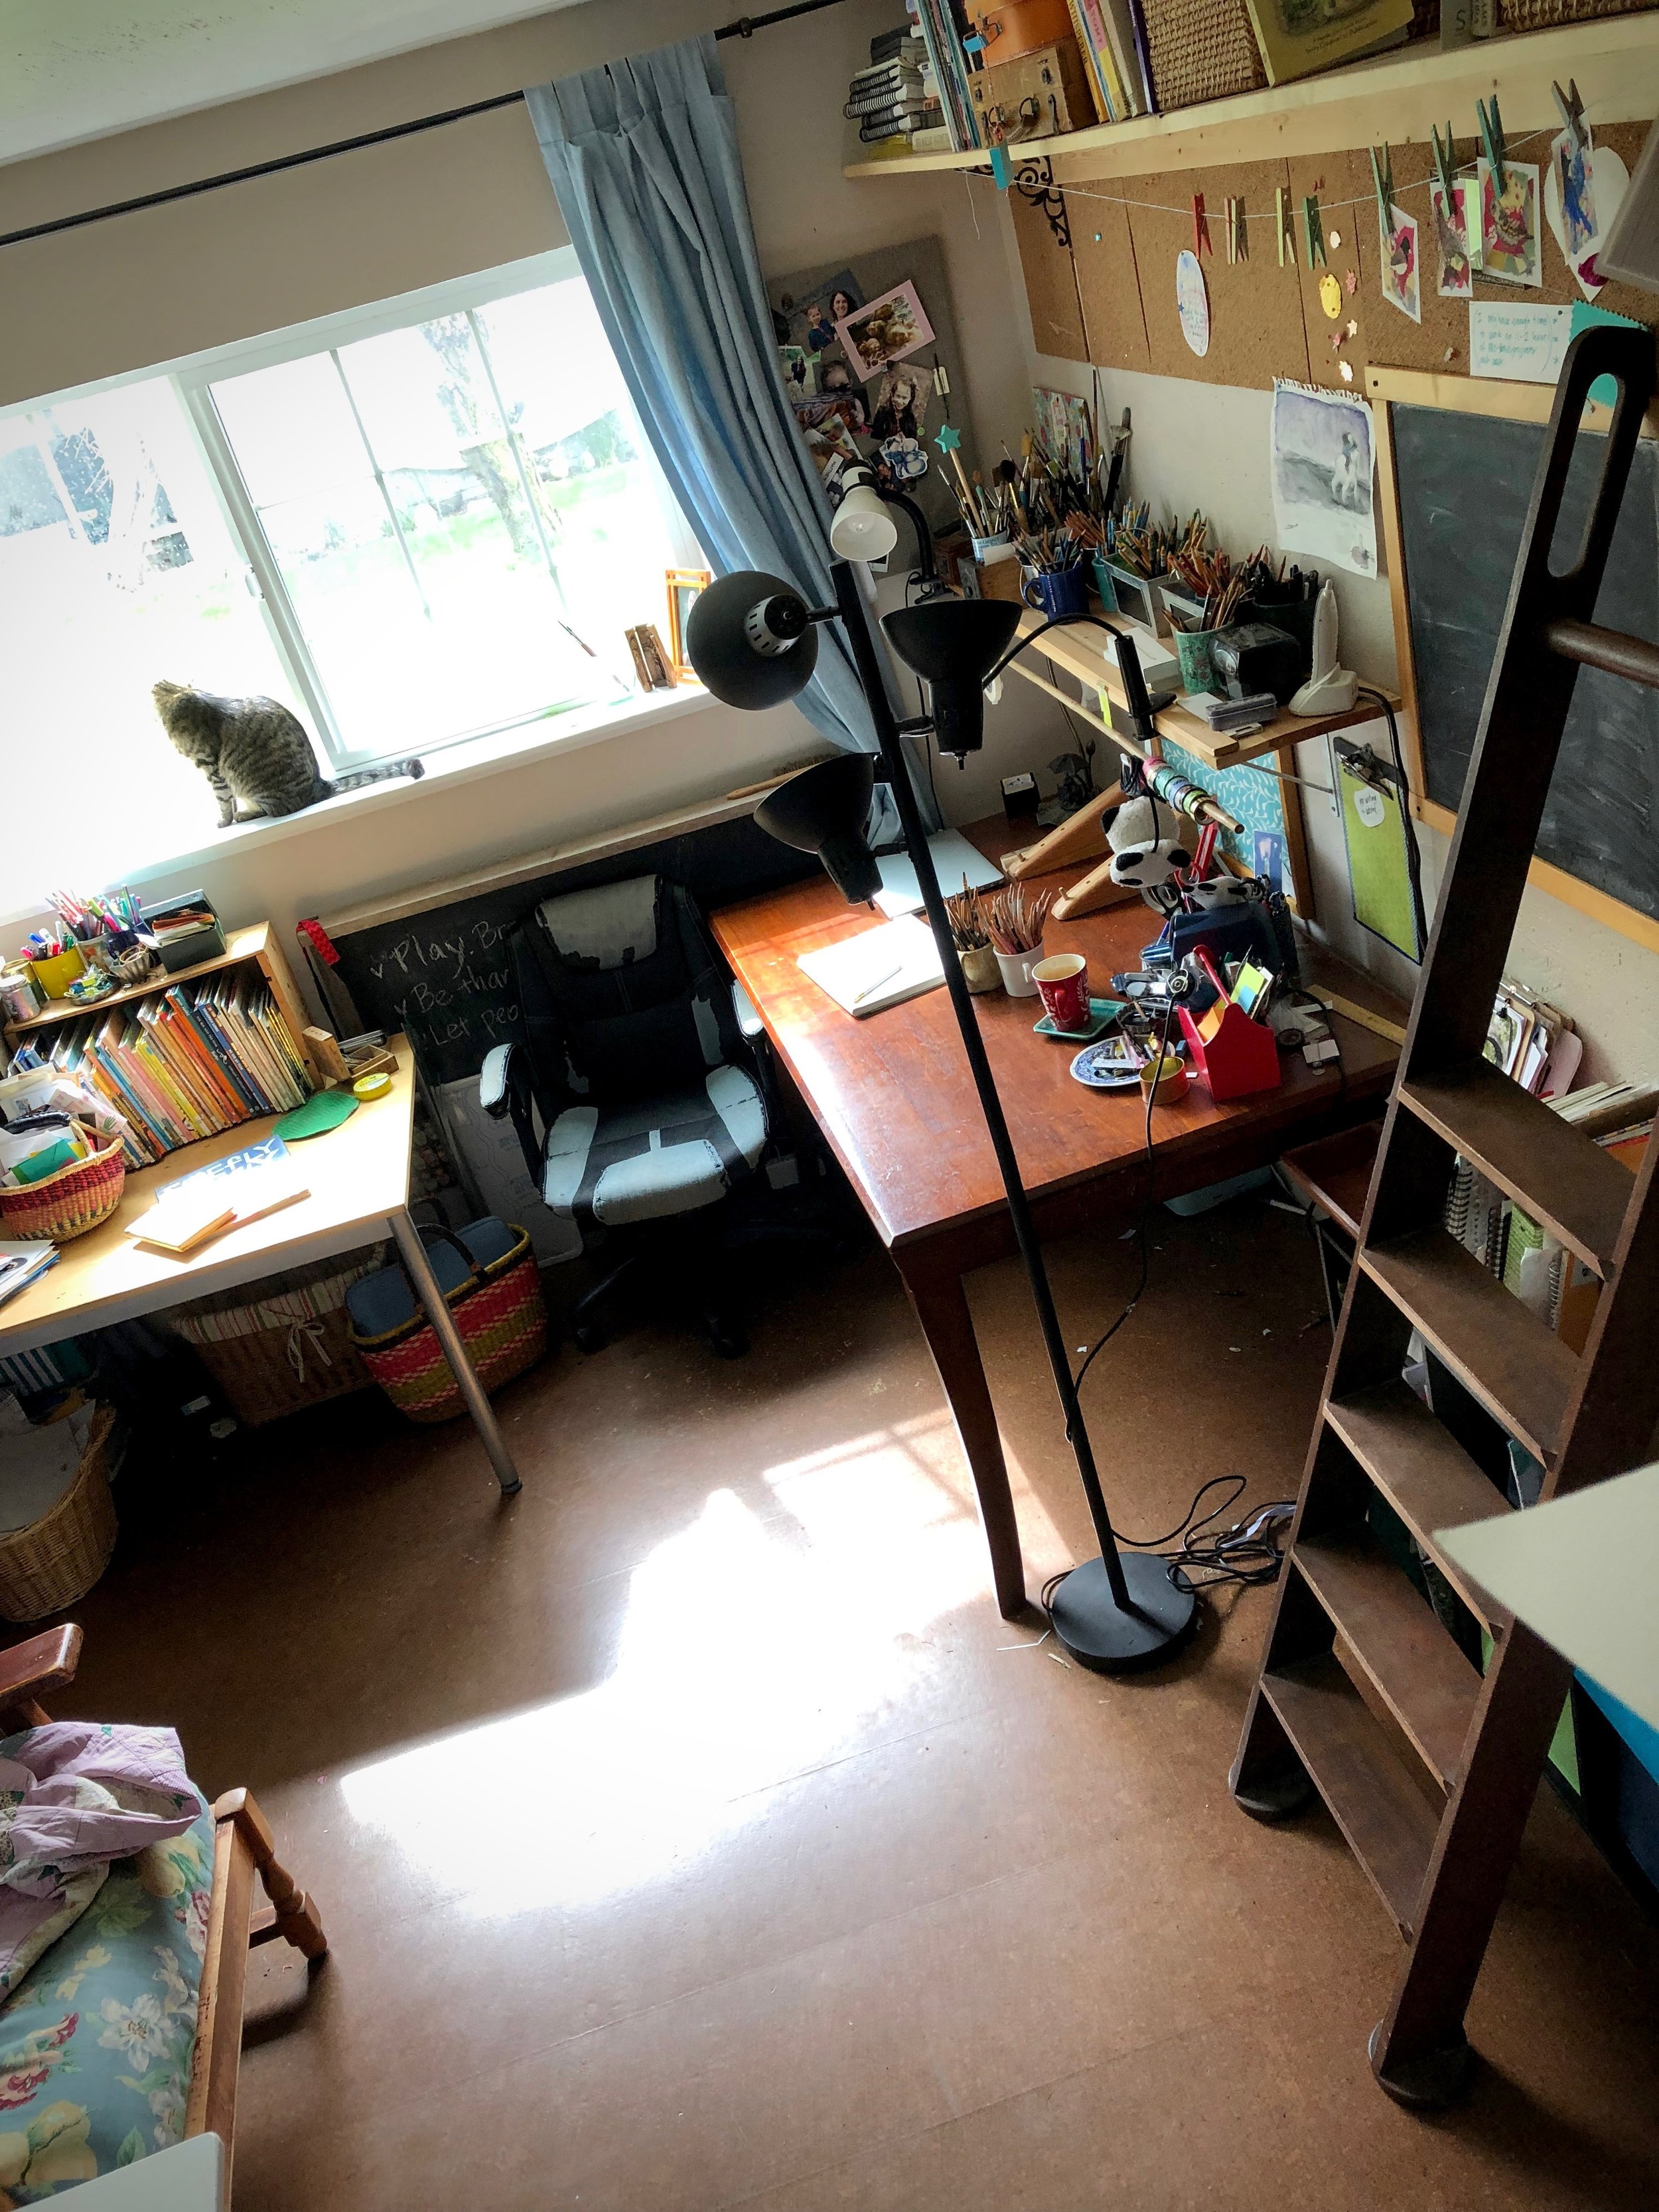 studio tour - photos and chat about workspace, habits, goal setting, & creative ways to grow